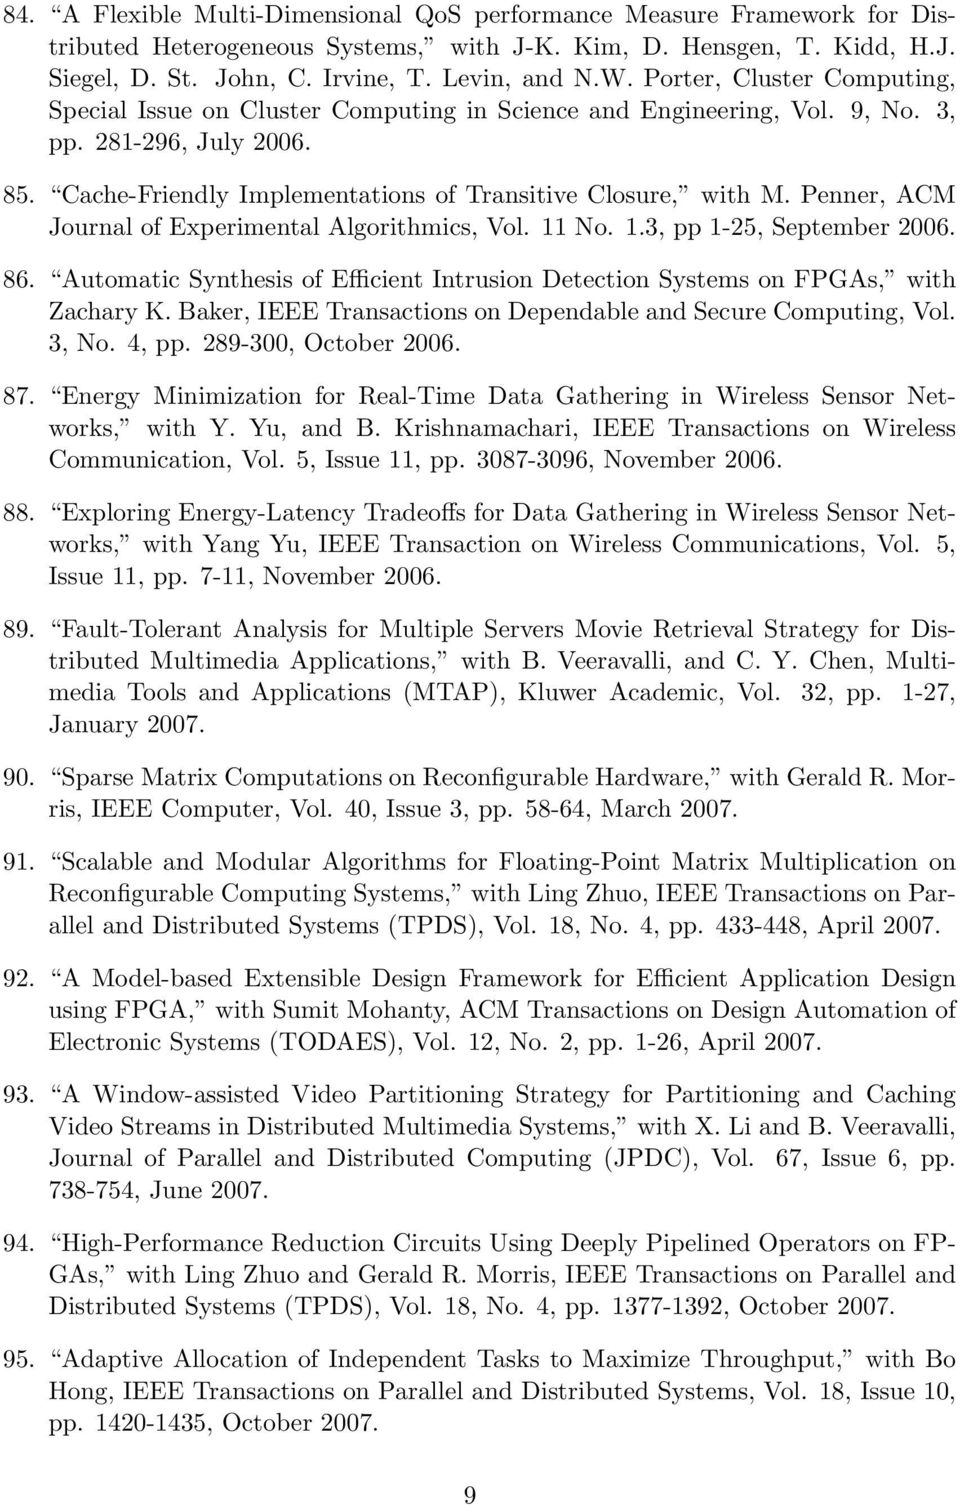 Penner, ACM Journal of Experimental Algorithmics, Vol. 11 No. 1.3, pp 1-25, September 2006. 86. Automatic Synthesis of Efficient Intrusion Detection Systems on FPGAs, with Zachary K.